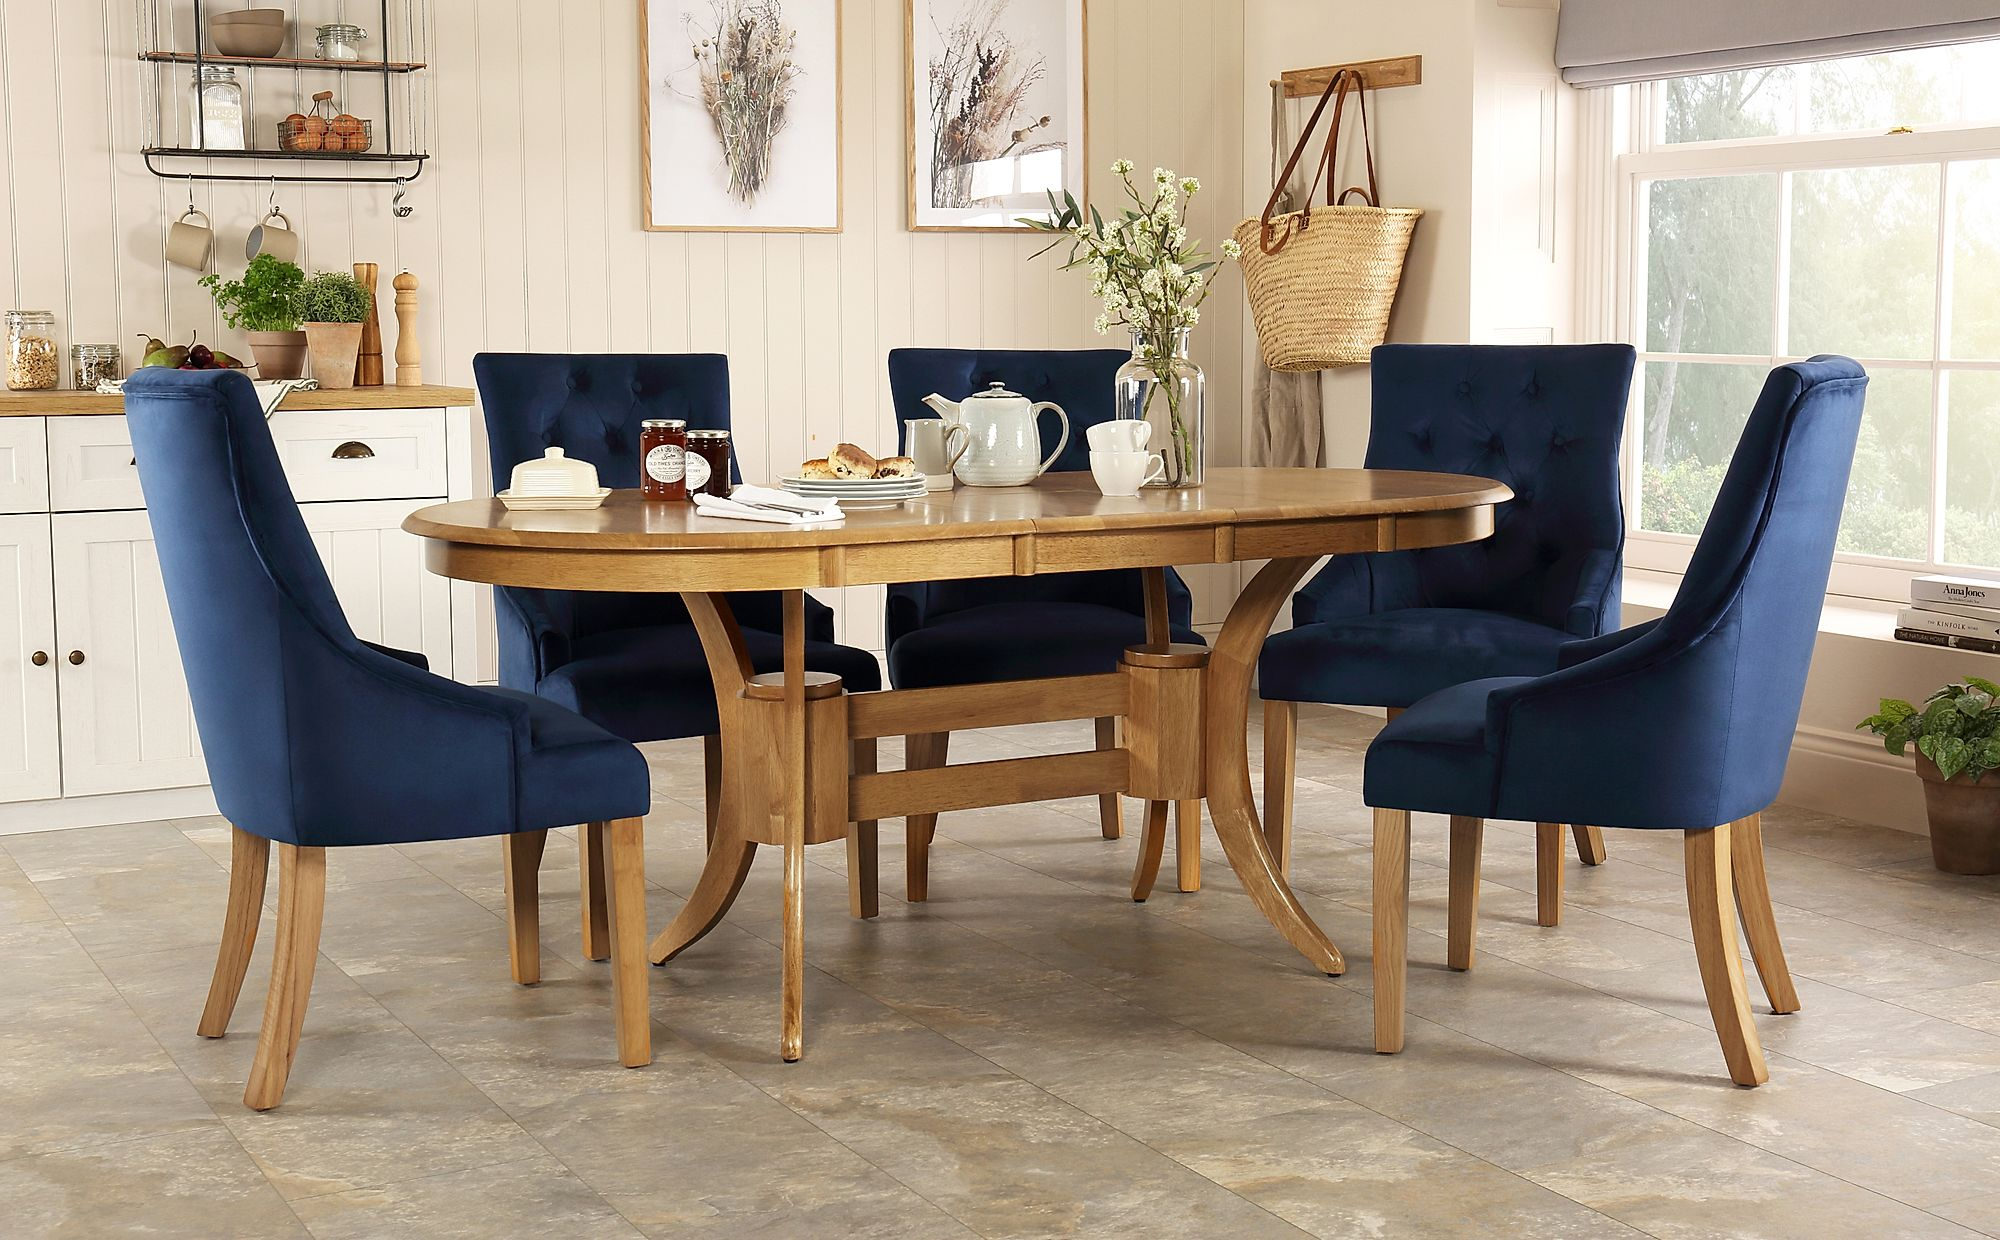 Townhouse Oval Oak Extending Dining Table with 6 Duke Blue ...